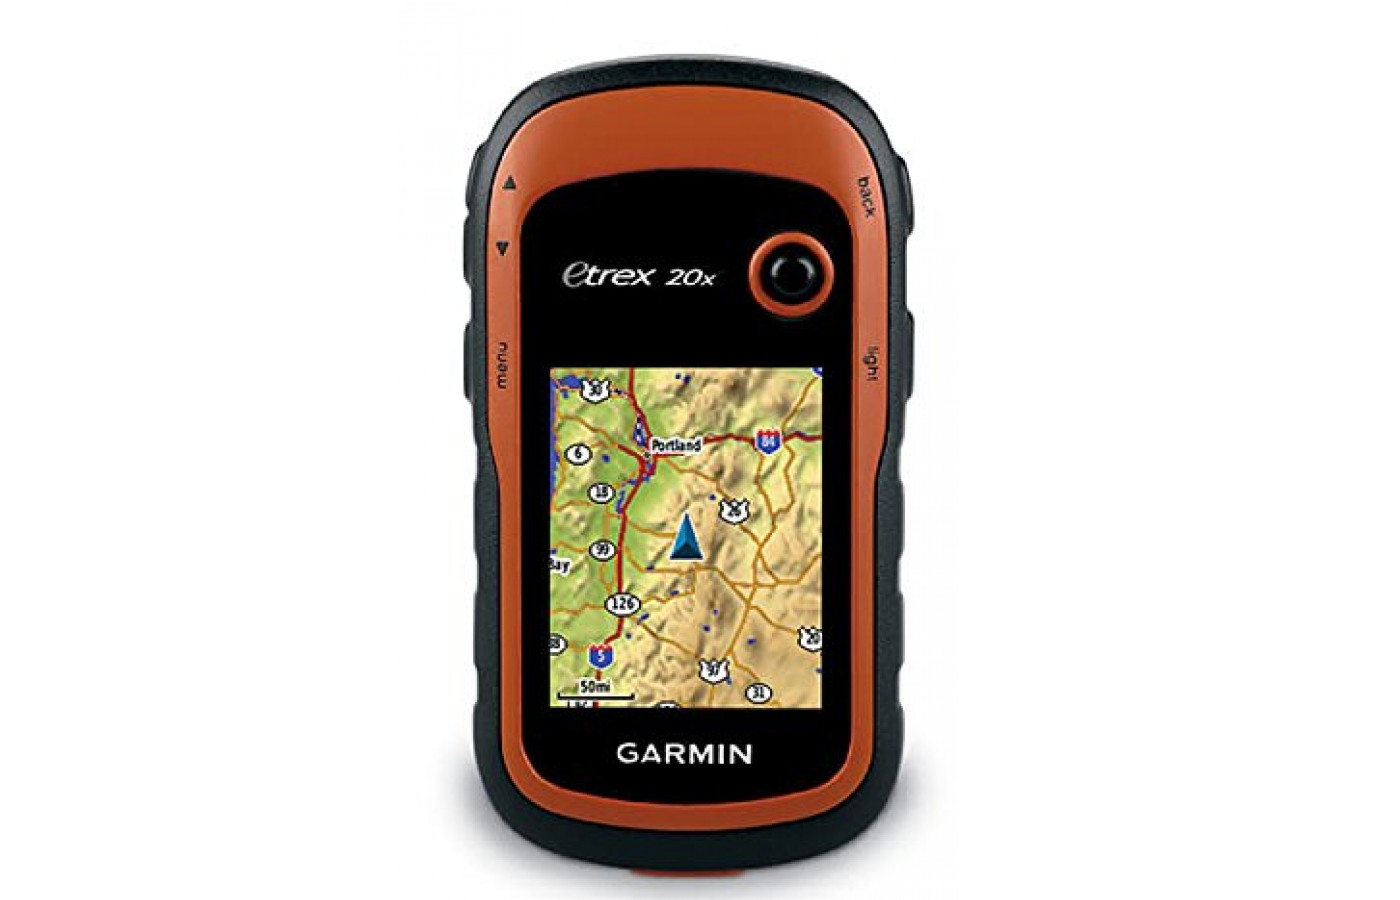 Download extra maps for the eTrex 20x.